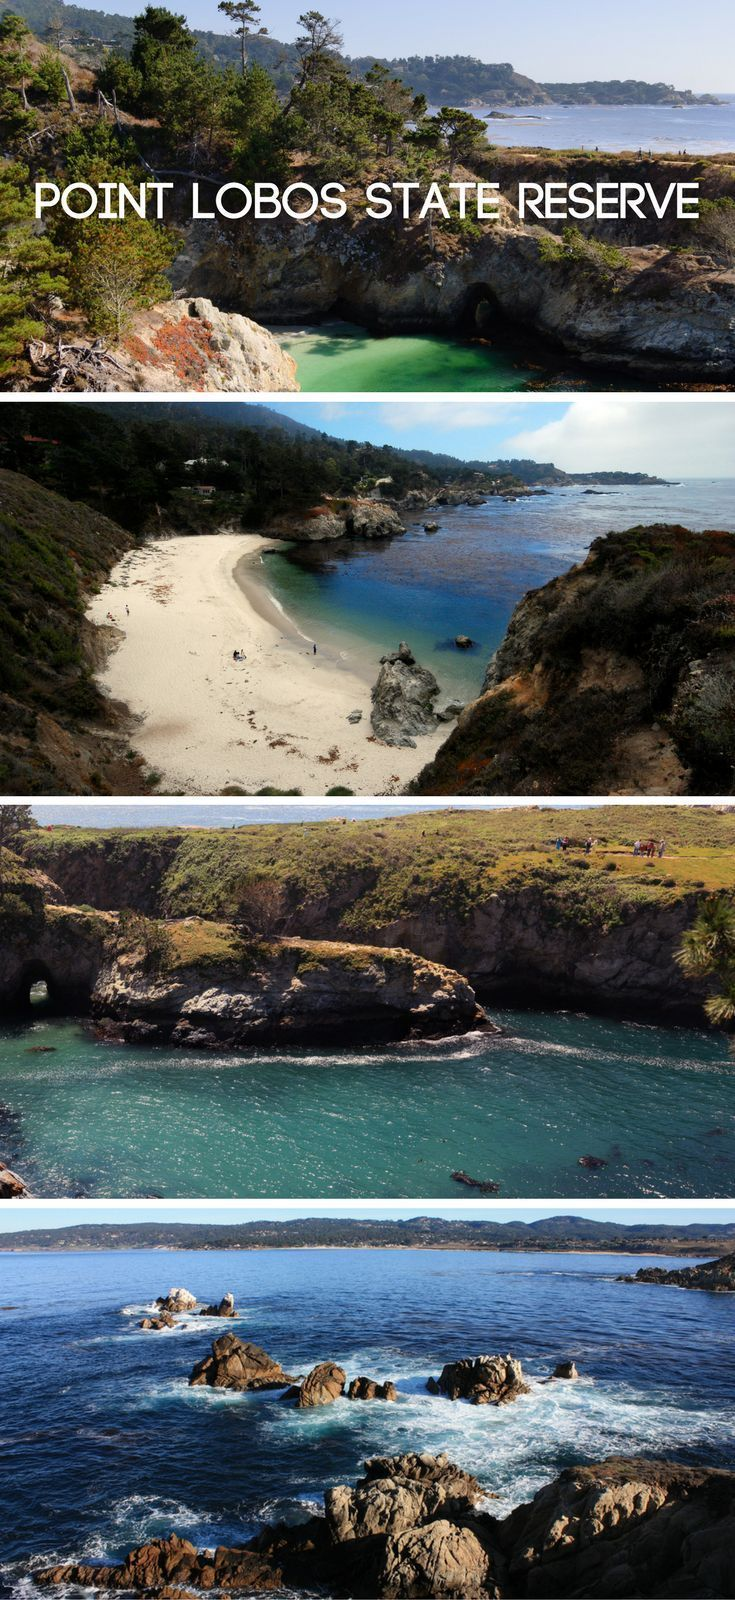 Carmel-by-the-Sea and Point Lobos show off Big Sur's beauty